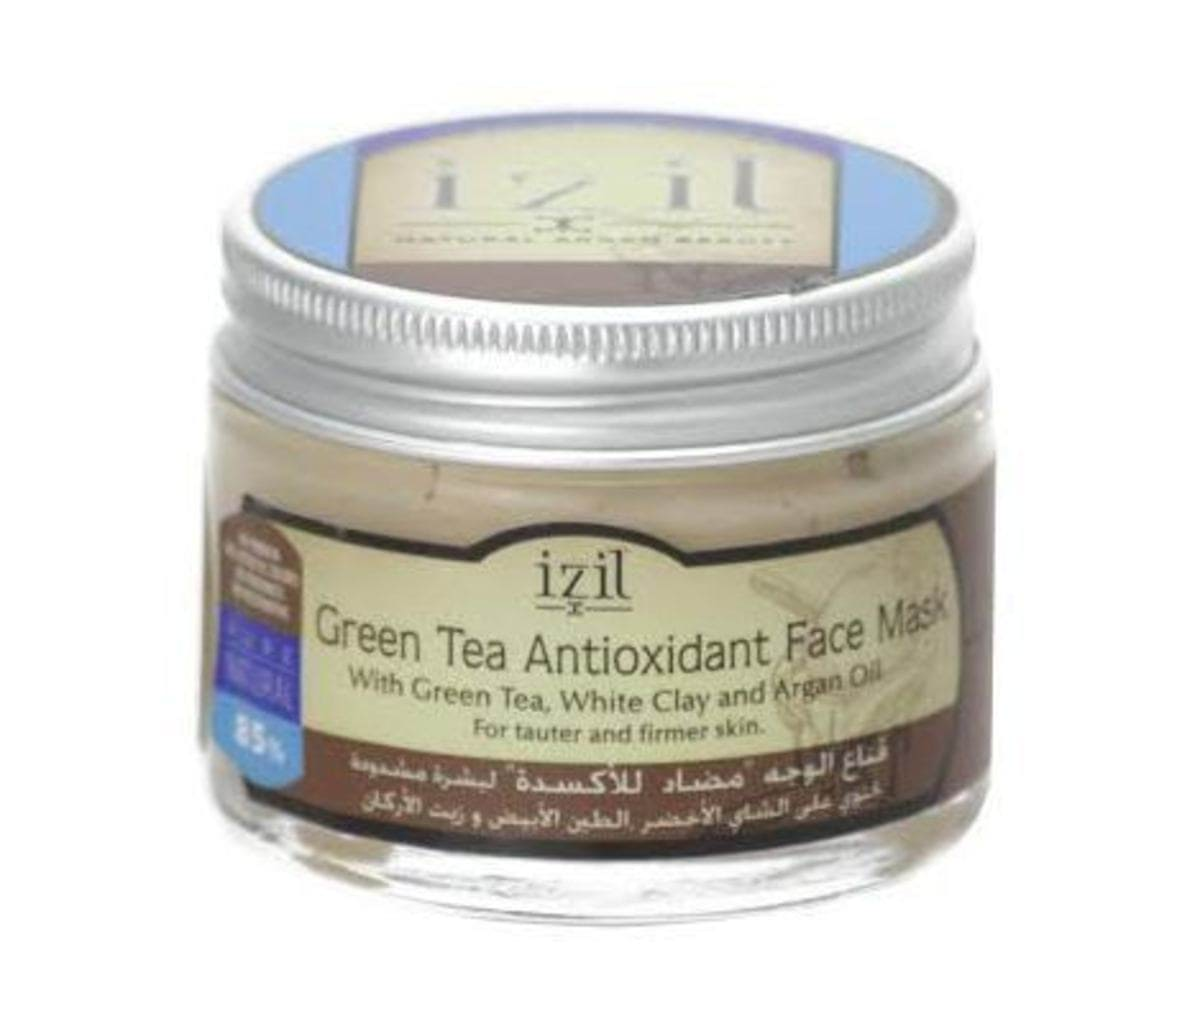 Izil Green Tea Antioxidant Face Mask